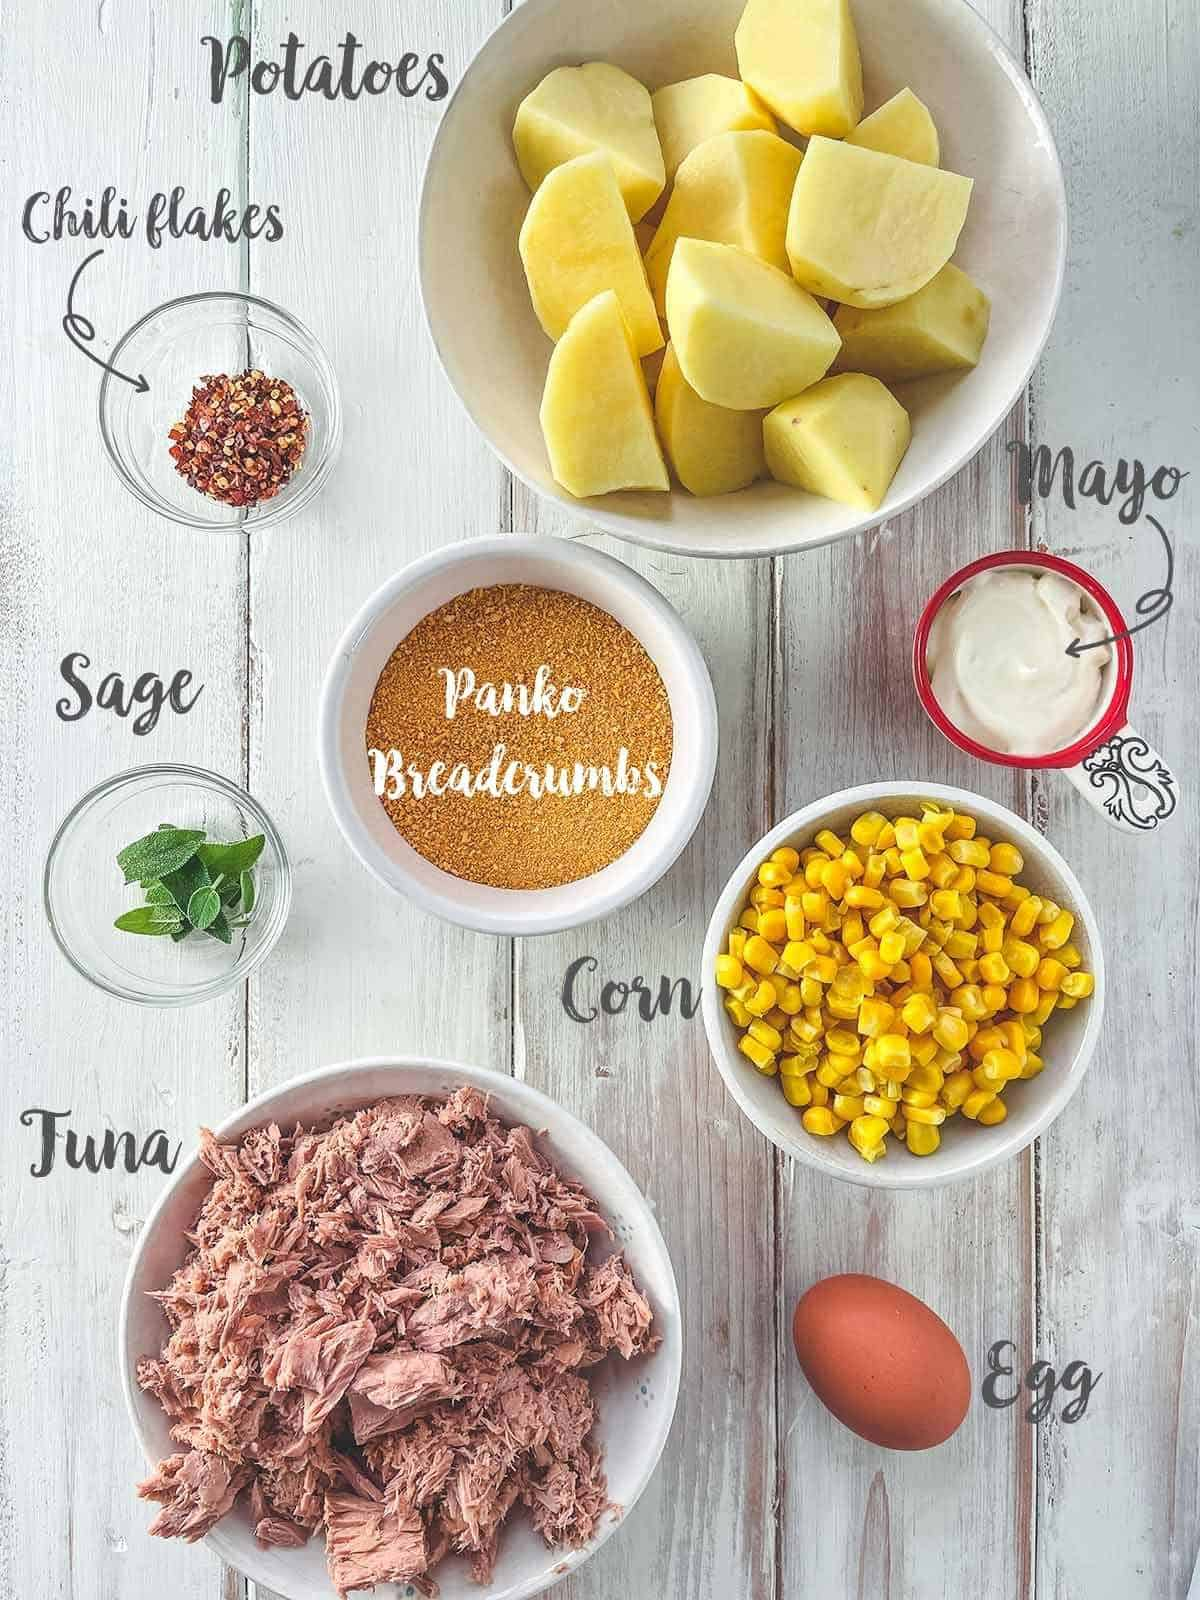 Ingredients used to make tuna & Sweetcorn fish cakes with text label overlays.